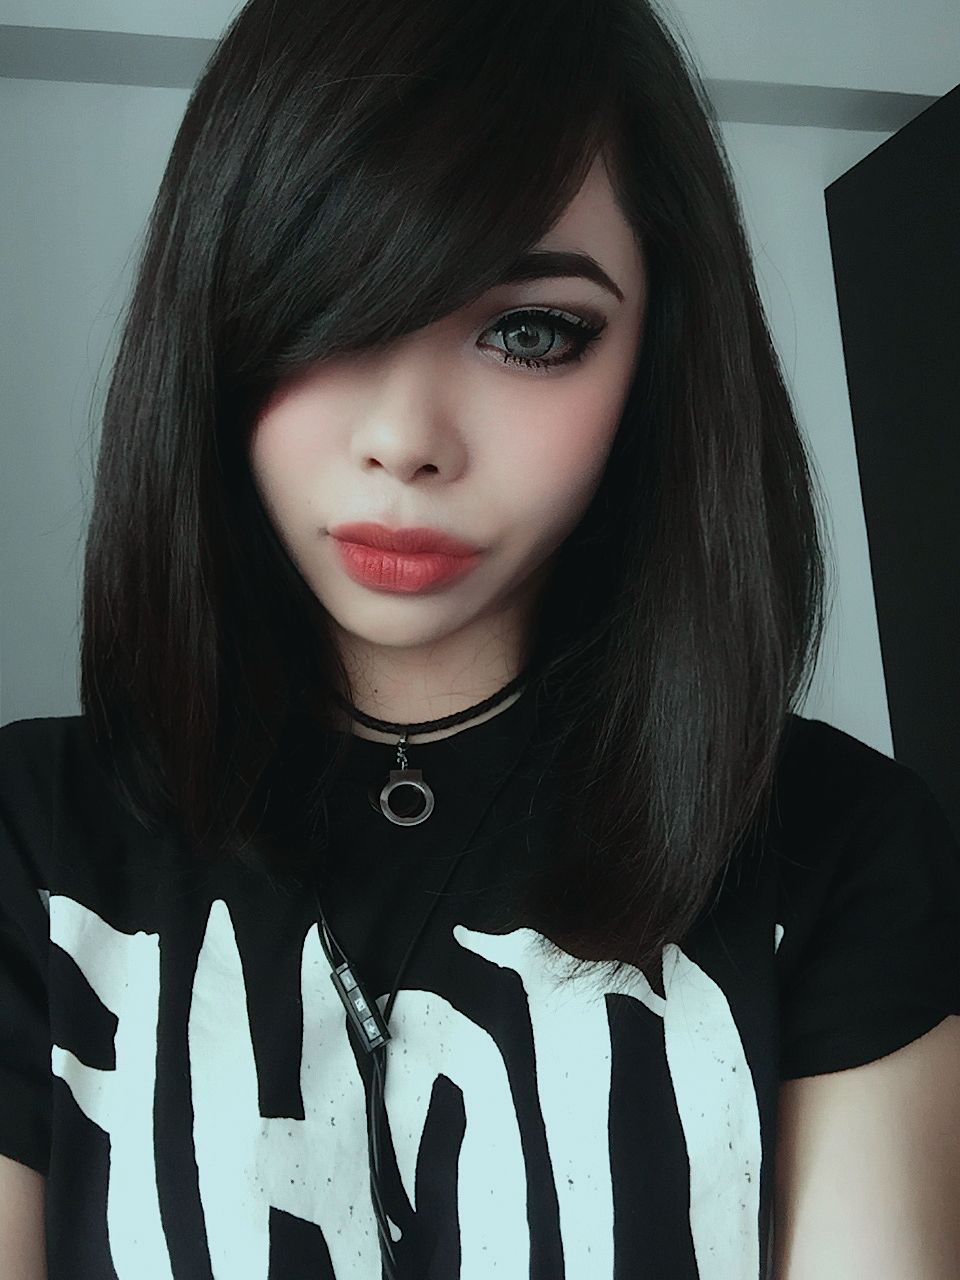 Disgusted sexy pinterest gothic goth girls and gothic beauty